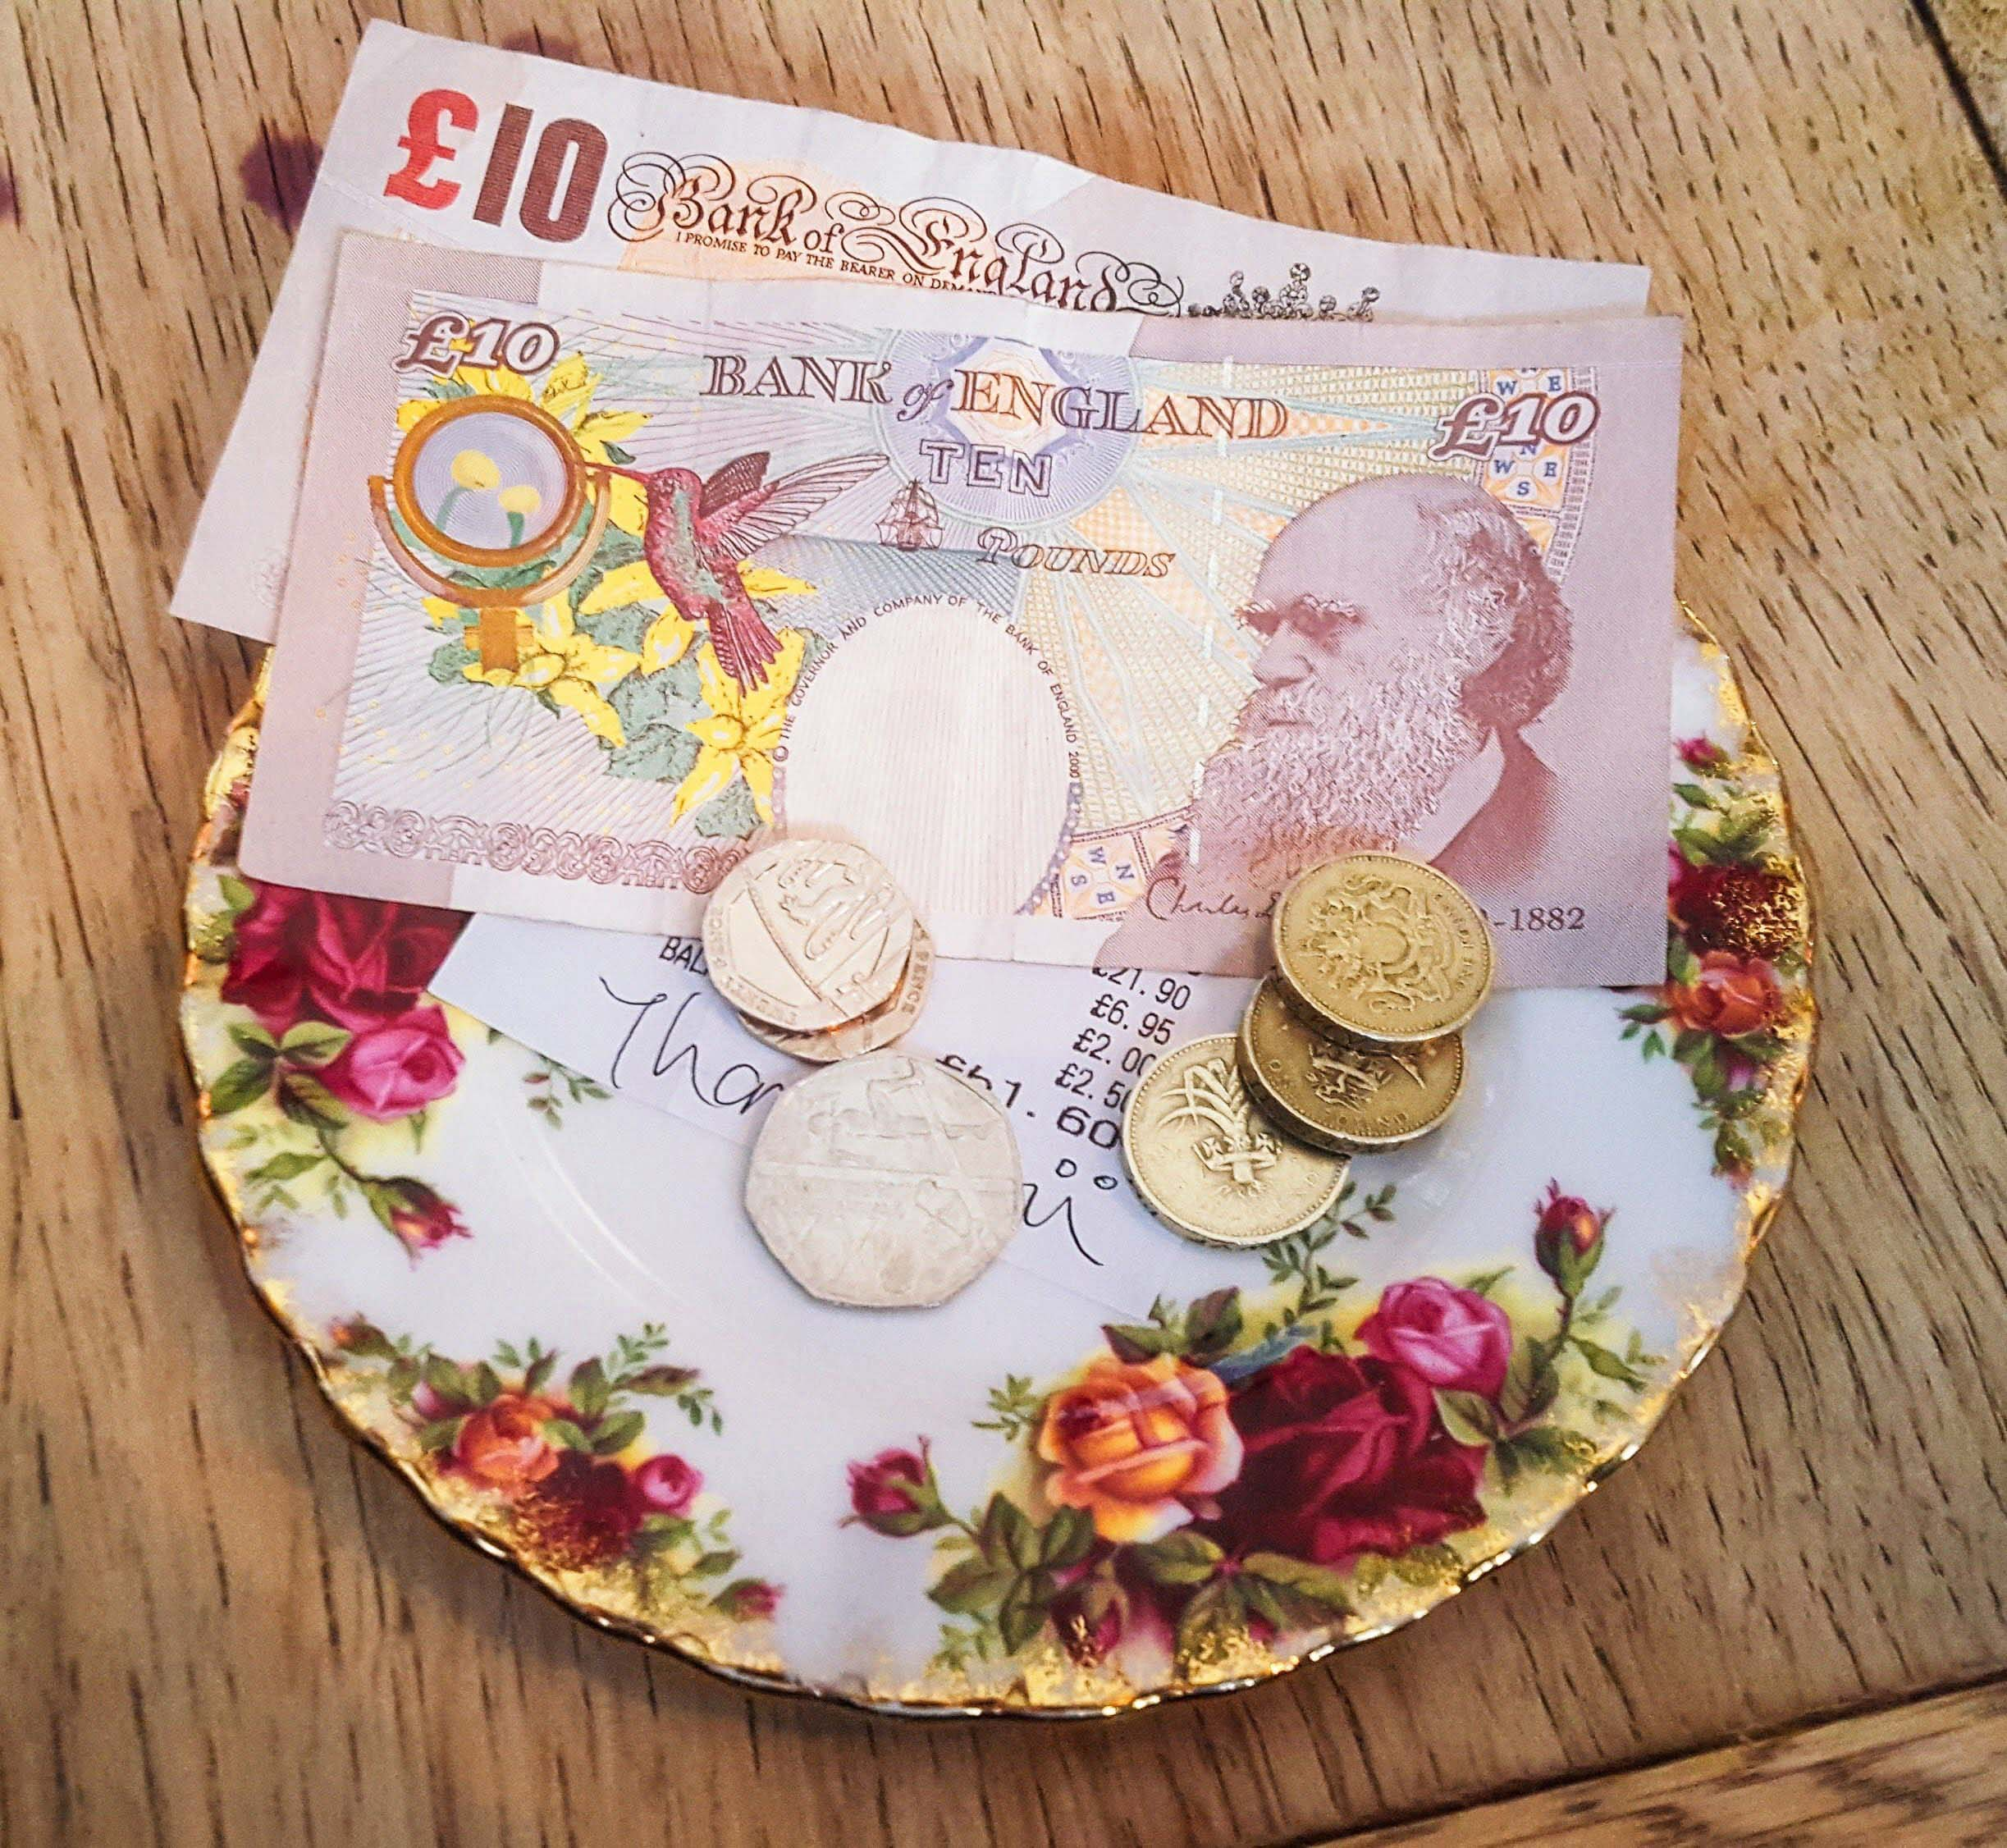 English notes and coins on a floral plate Third image: Tube sign